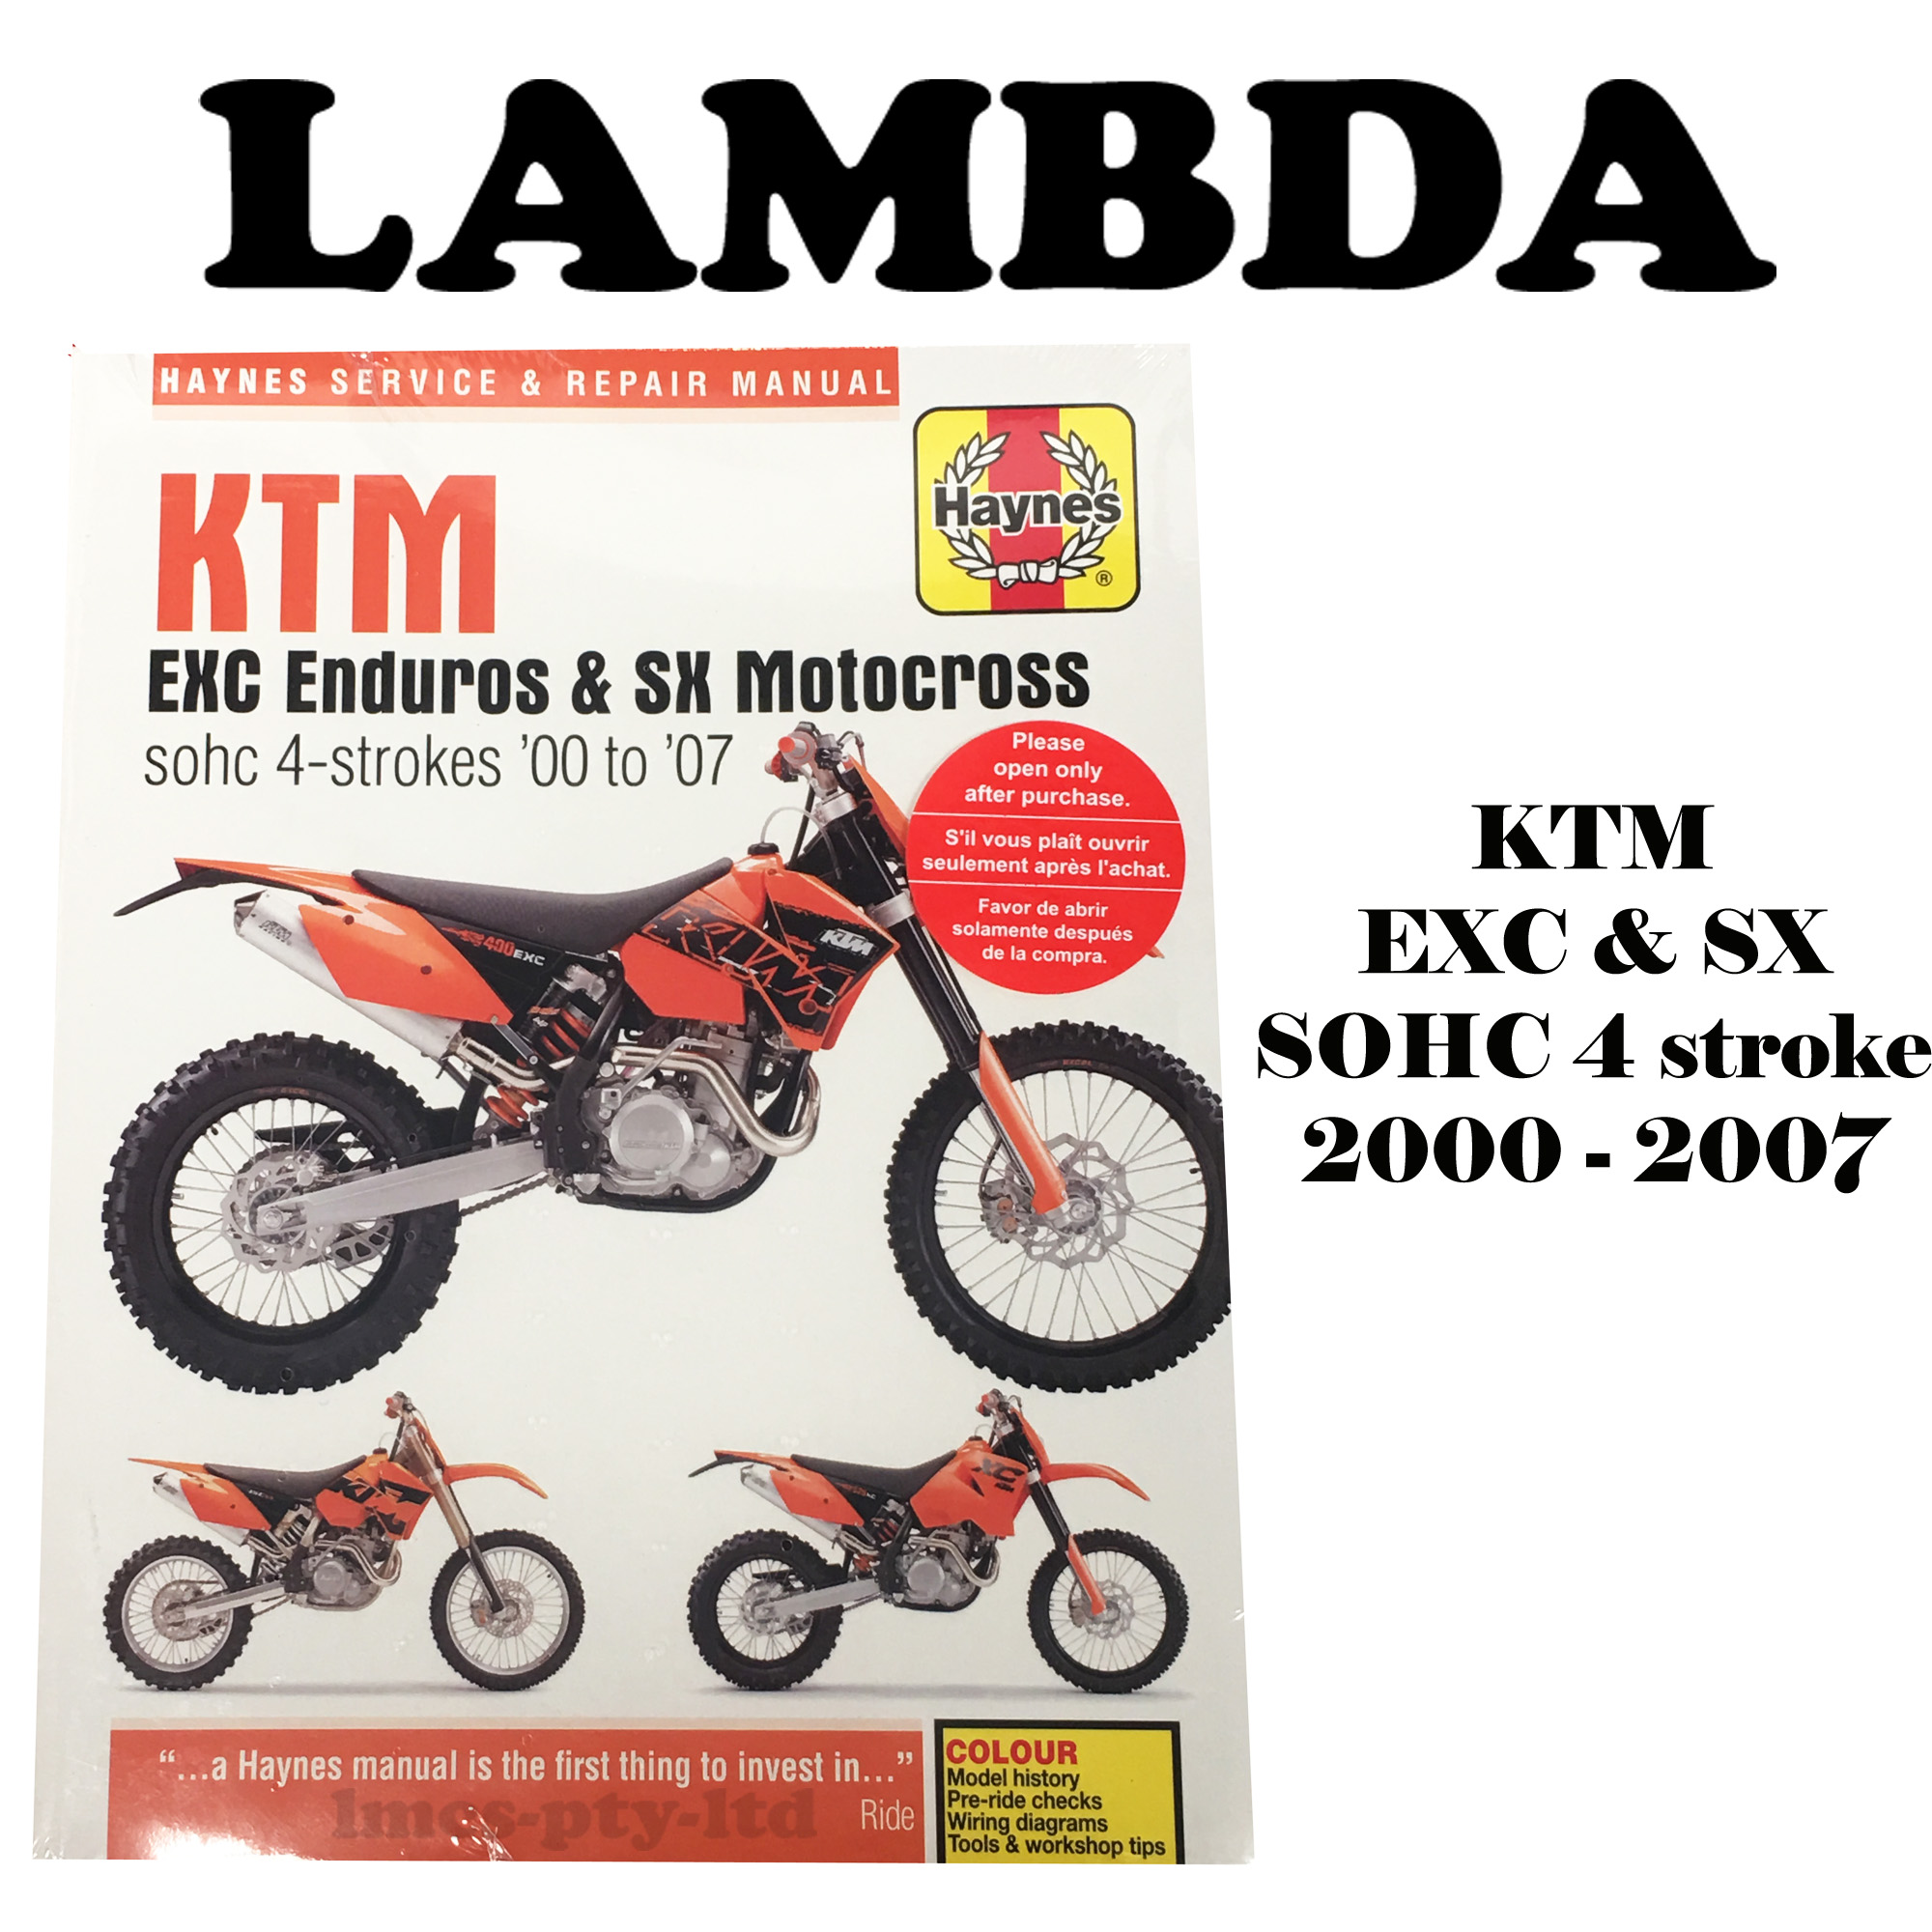 Manual Book by Haynes for KTM 250EXC 400EXC 450EXC 520EXC 525EXC on ktm 250 sx wiring diagram, ktm 500 exc wiring diagram, ktm 520 exc wiring diagram,